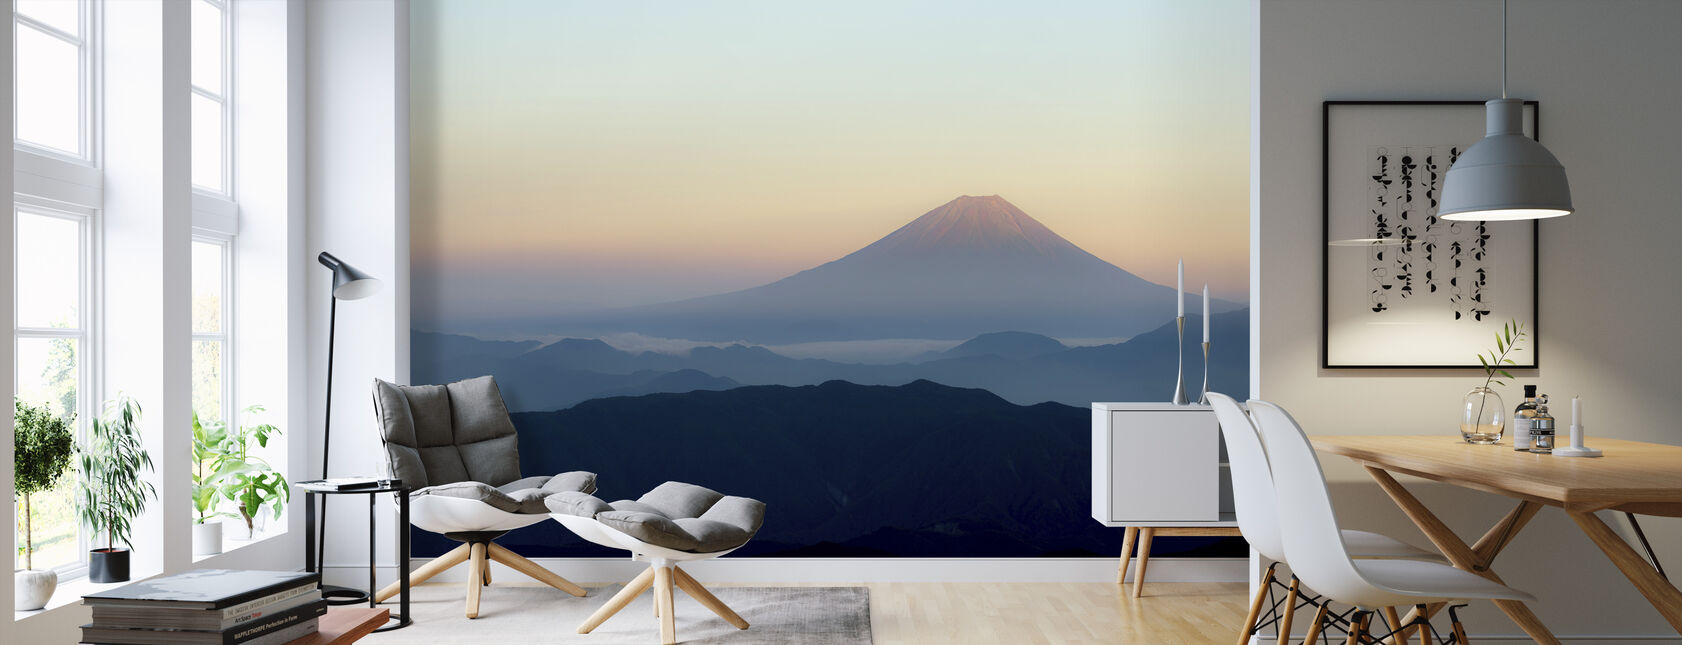 Mt. Fuji - Wallpaper - Living Room